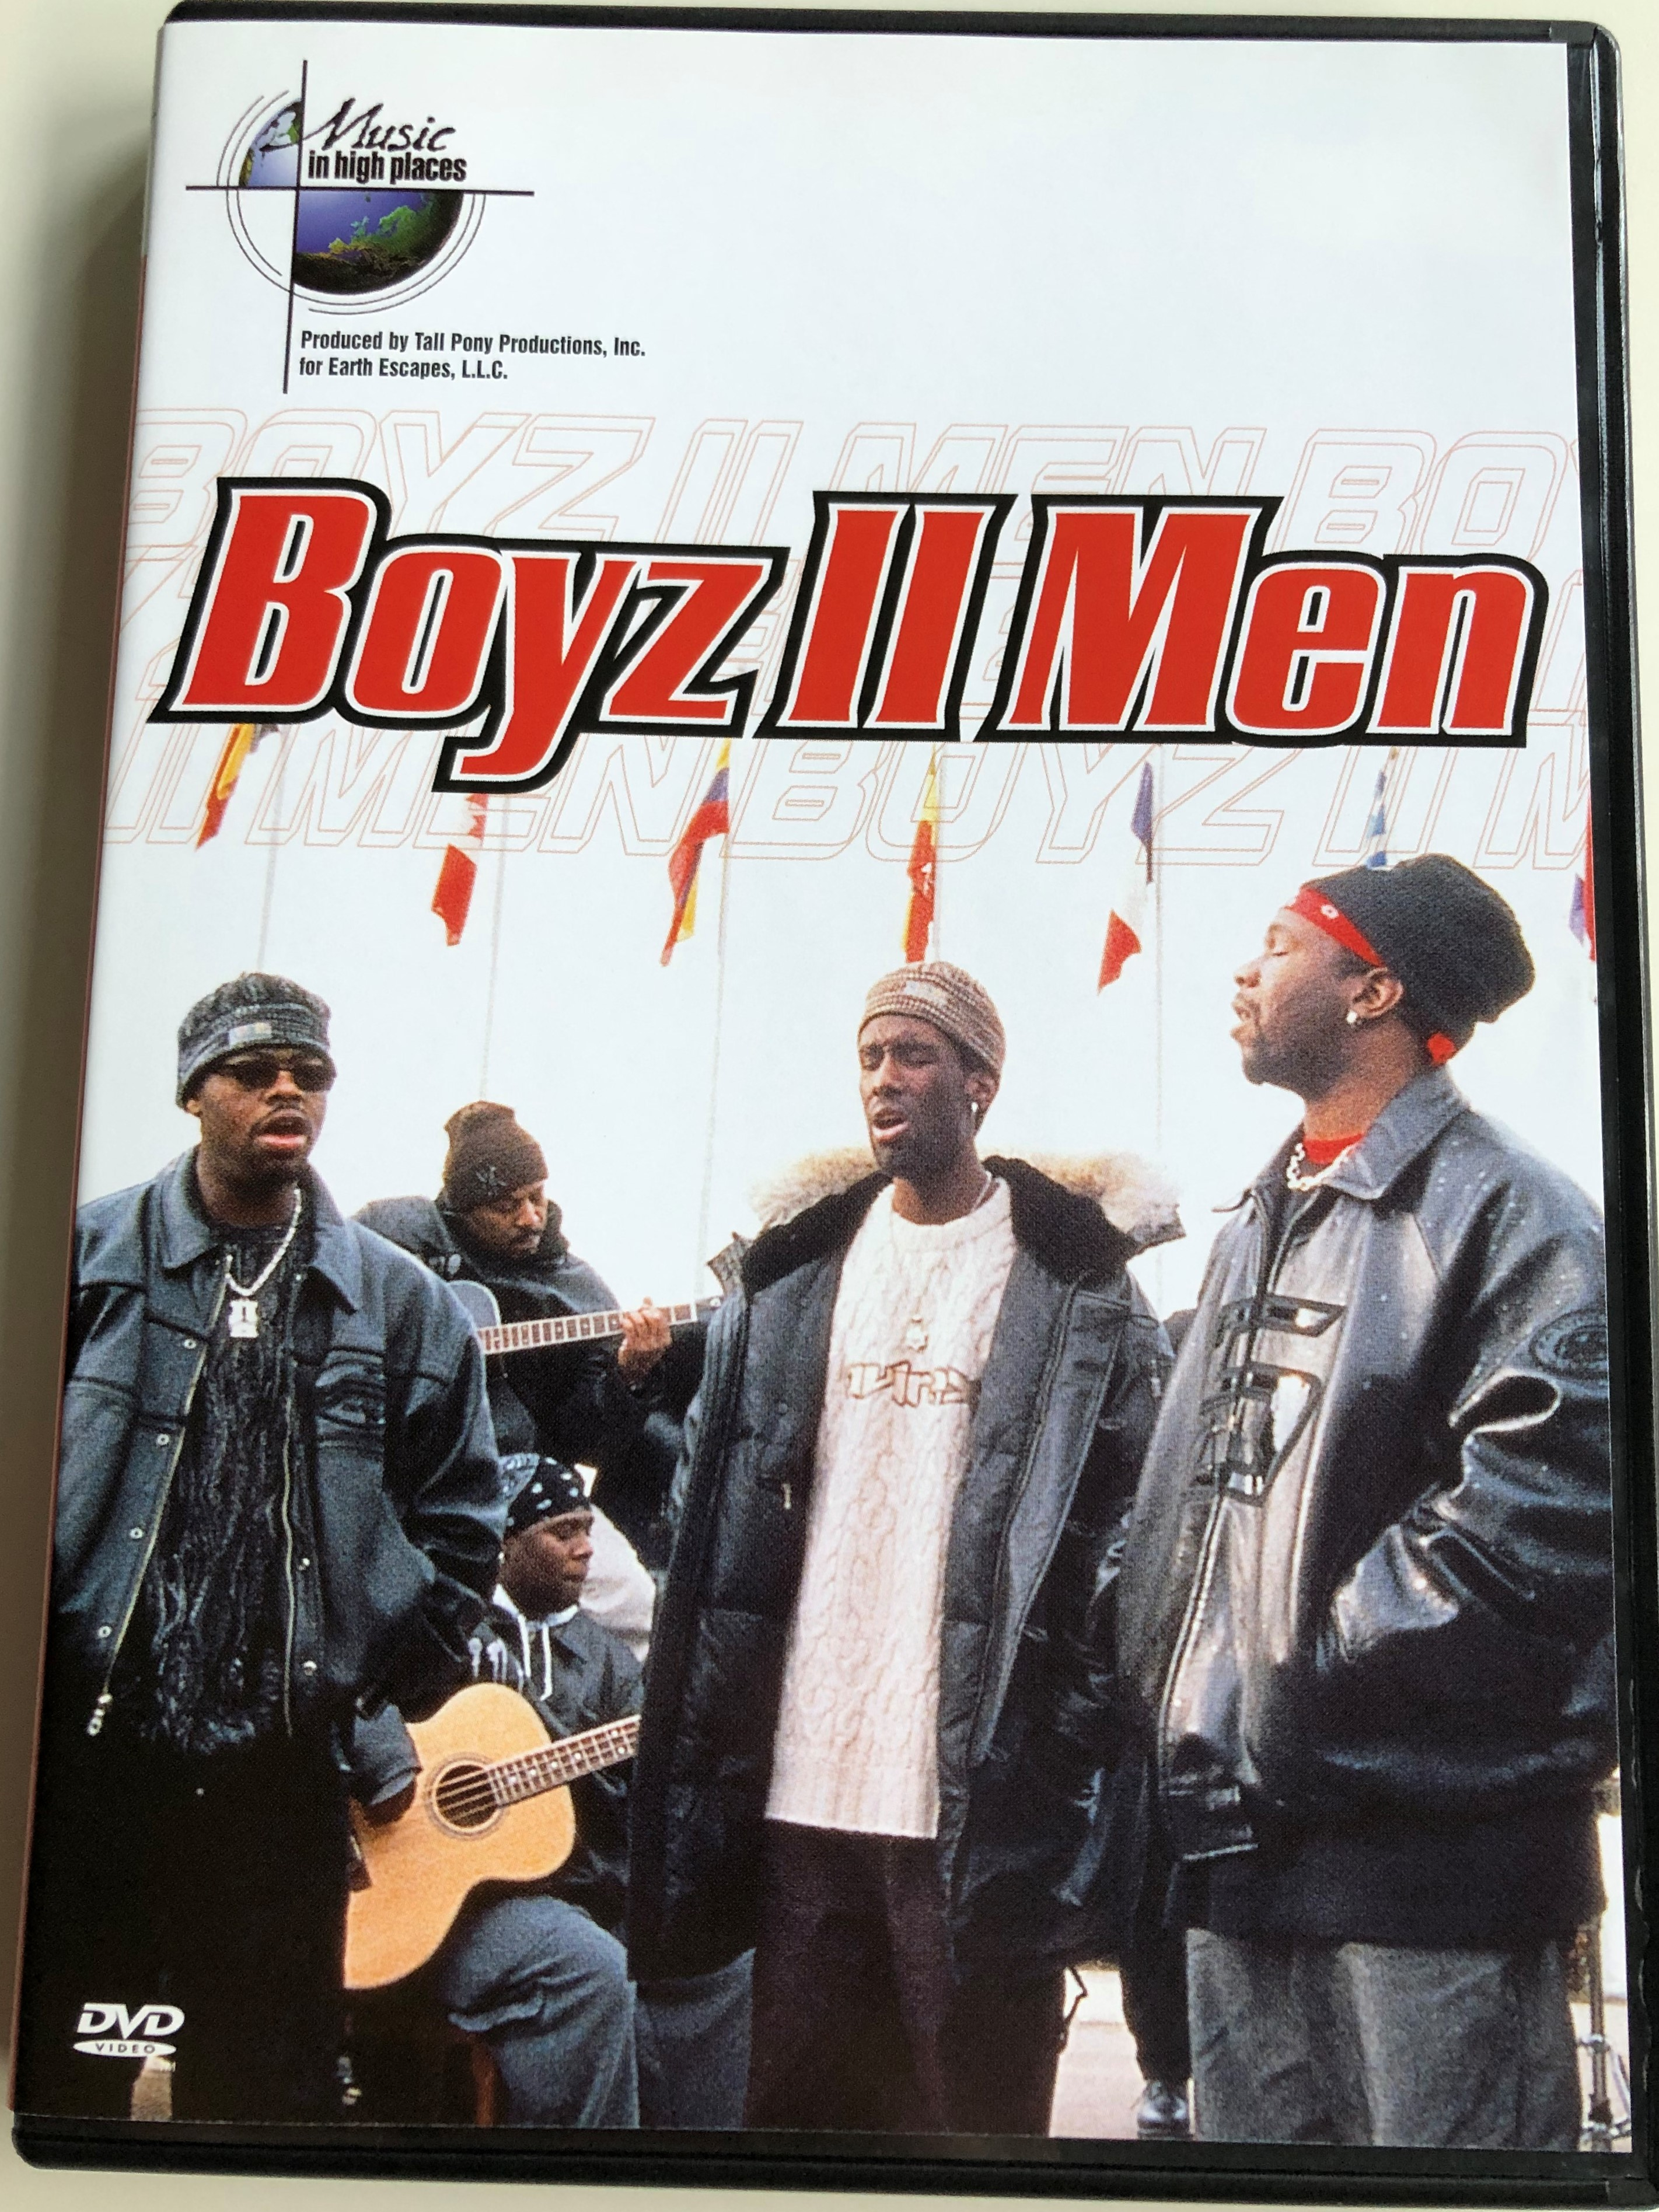 boyz-ii-men-dvd-2001-music-in-high-places-directed-by-alan-carter-1.jpg